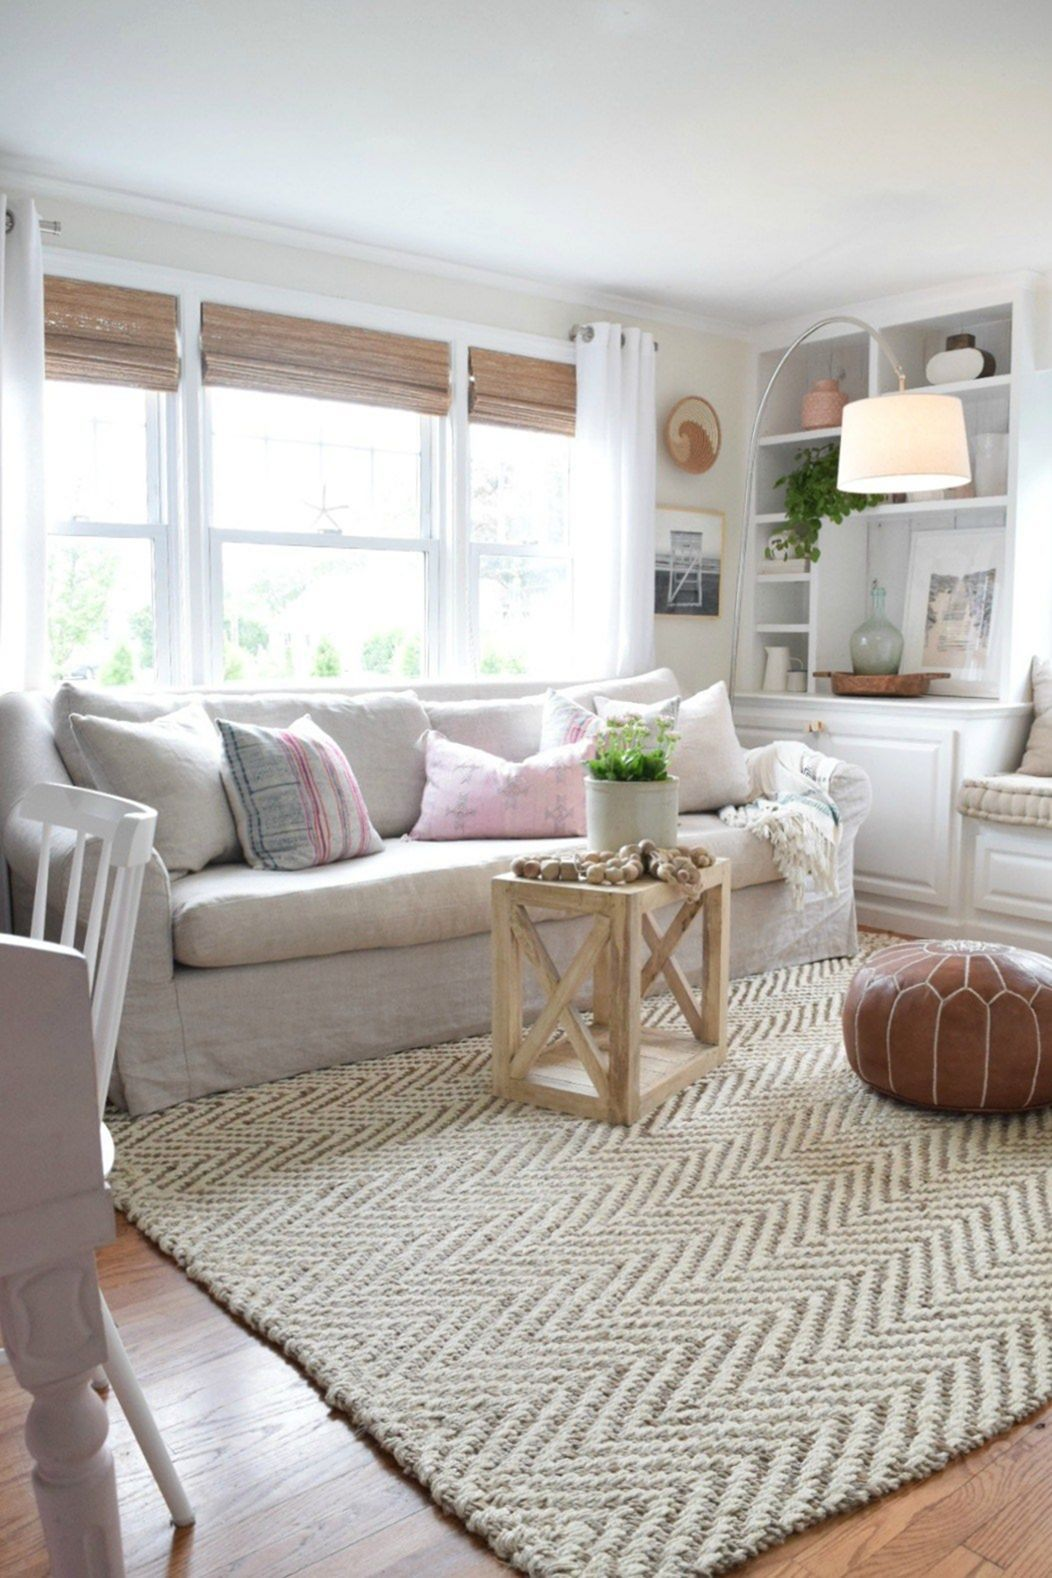 Cute Rugs For Small Living Room In 2020 Rugs In Living Room